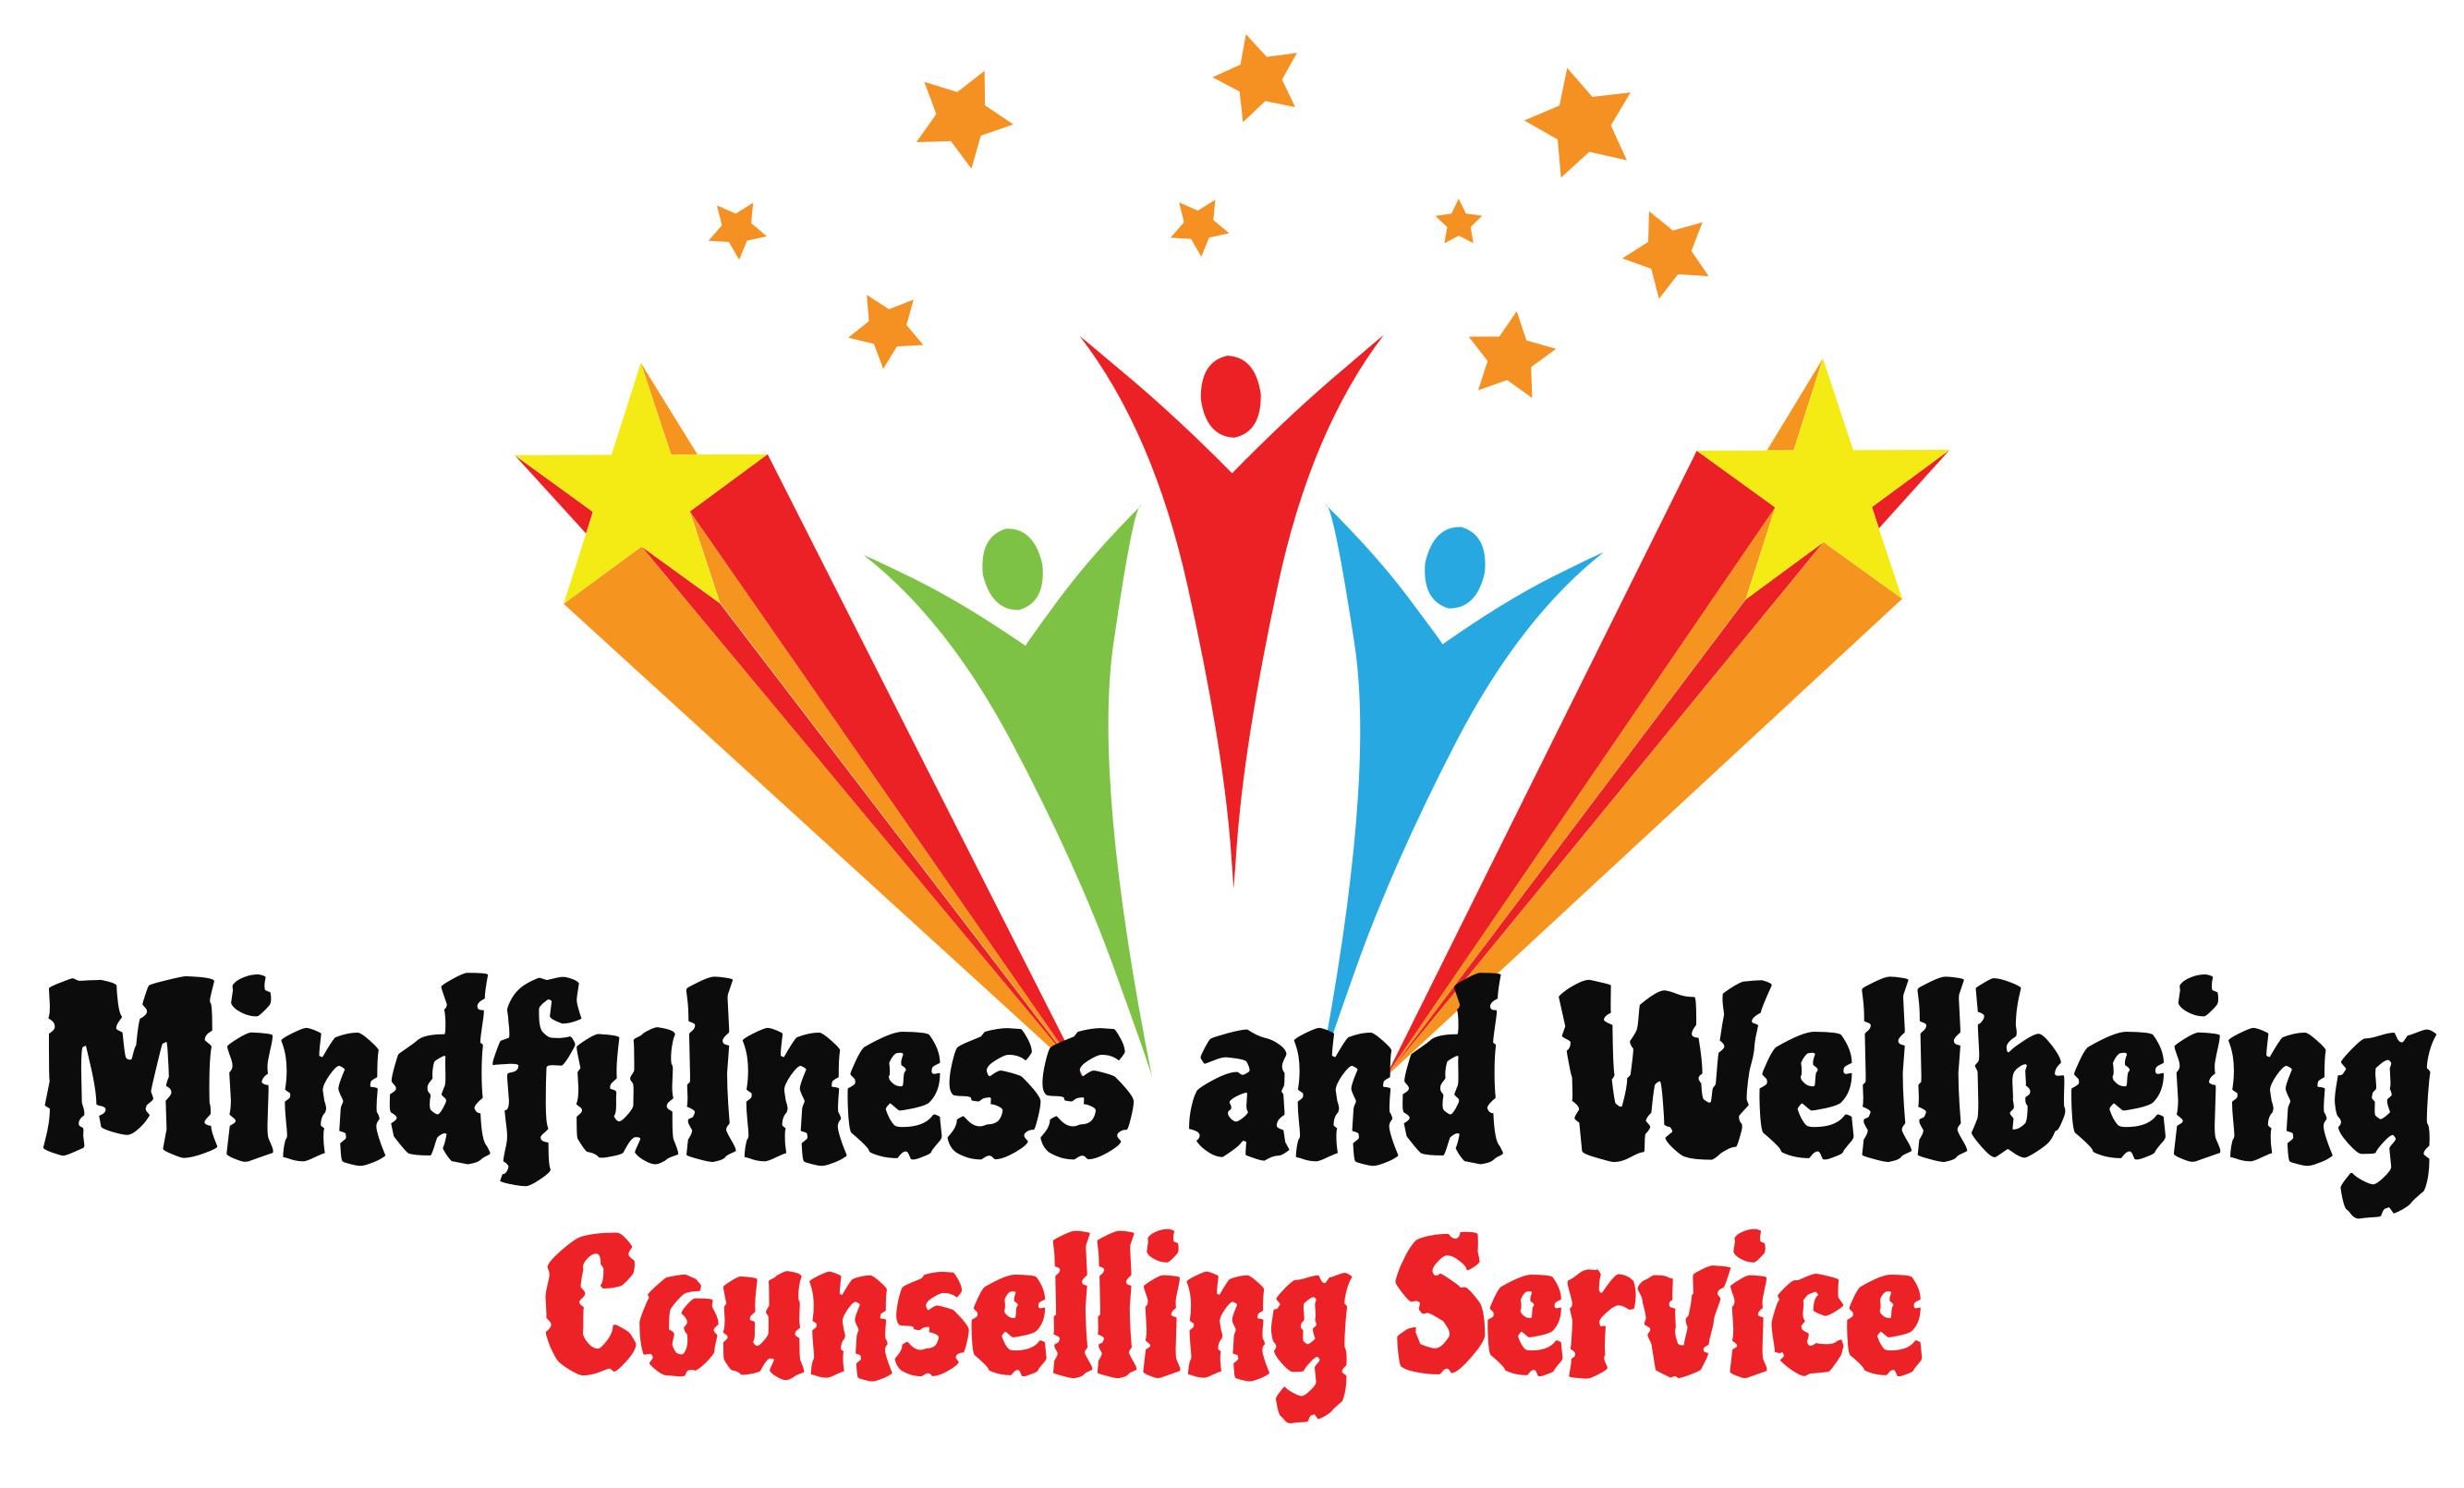 Mindfulness and Wellbeing Counselling Service